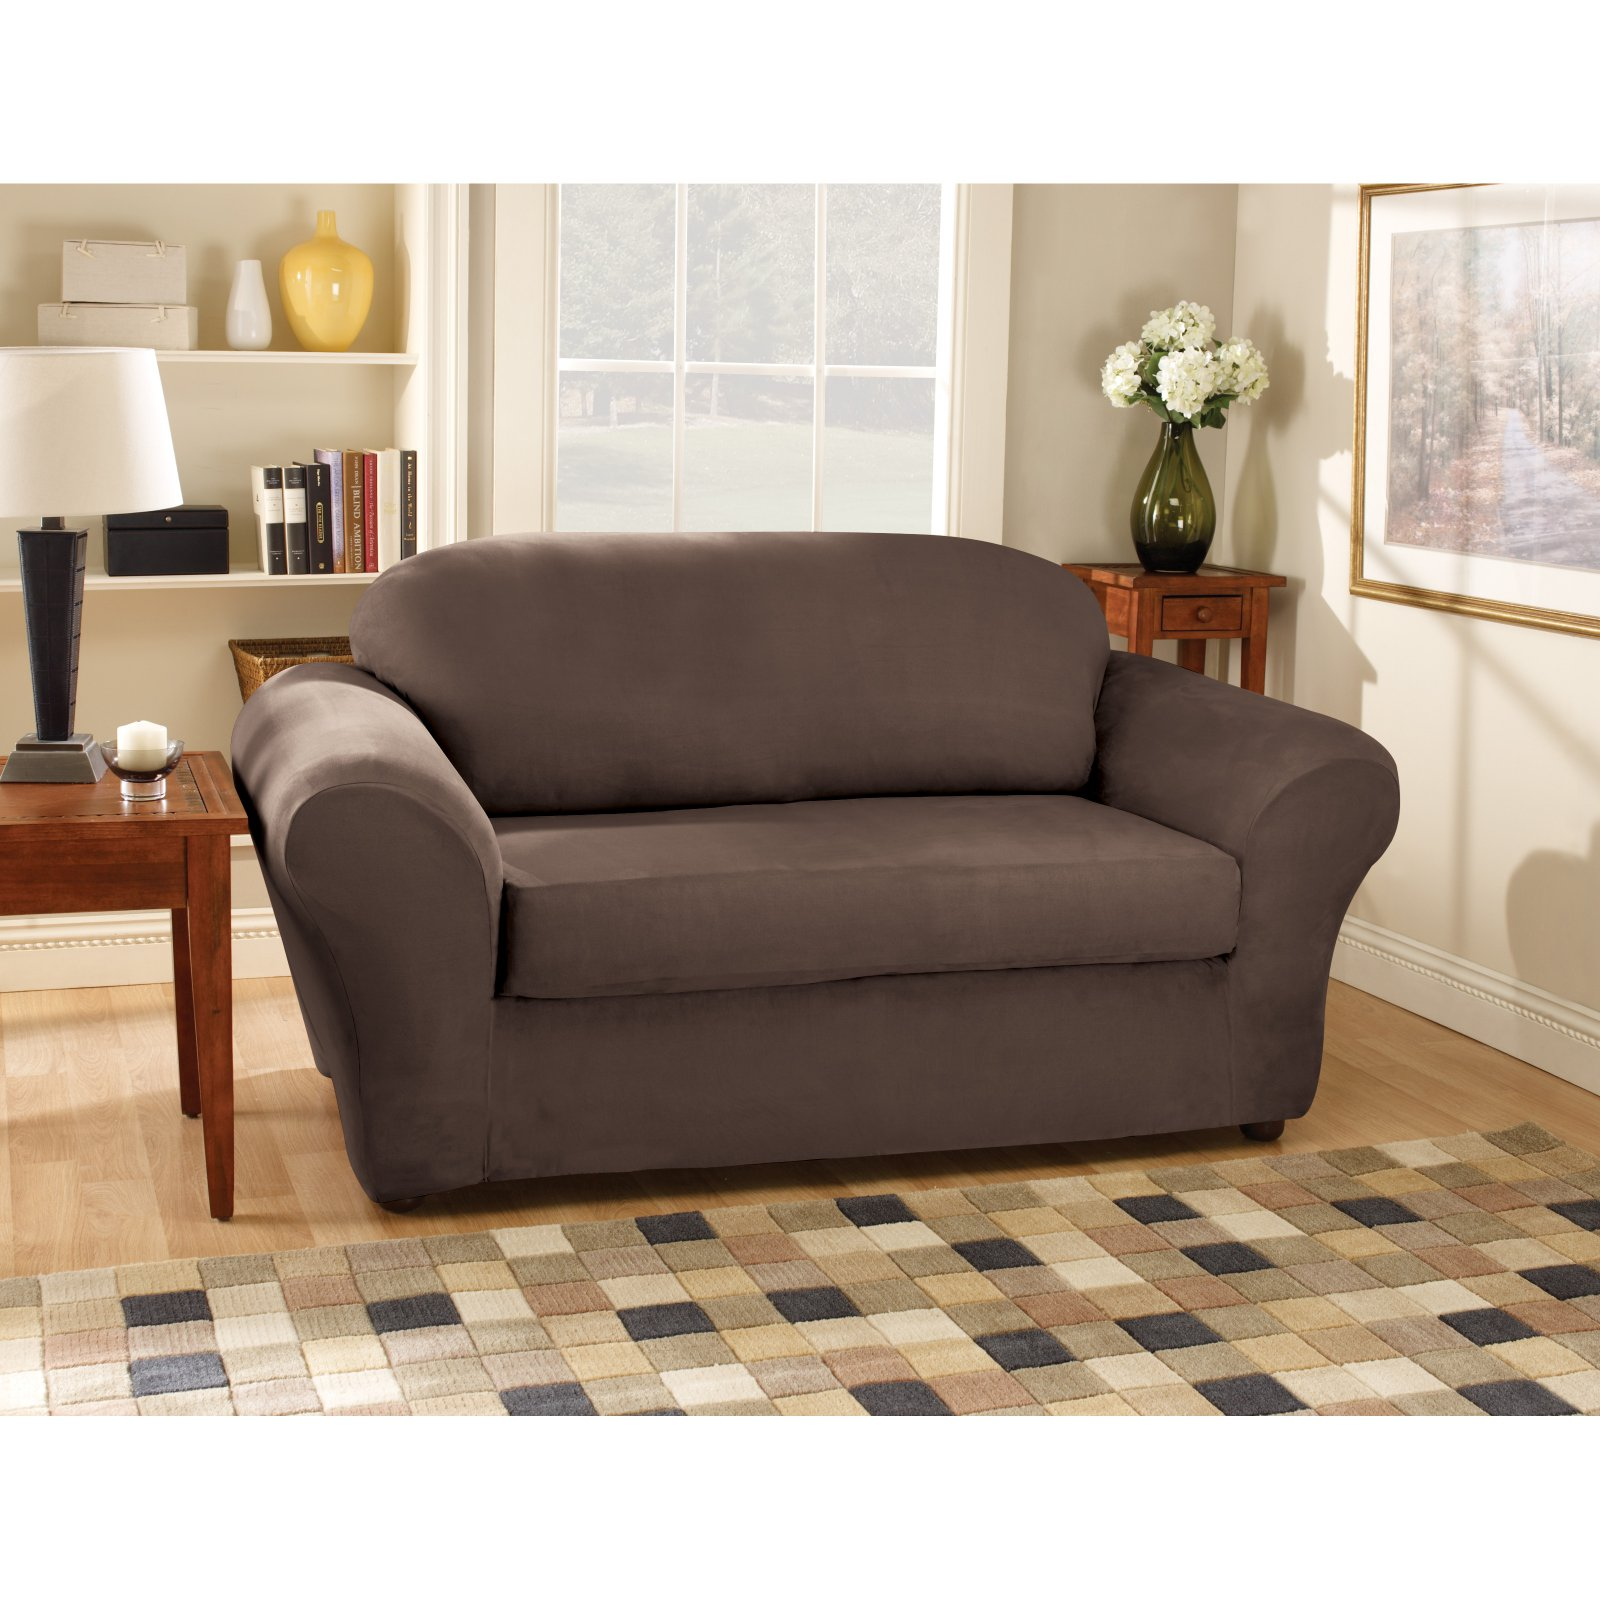 Sure Fit Suede Loveseat Stretchable Slipcovers Walmart